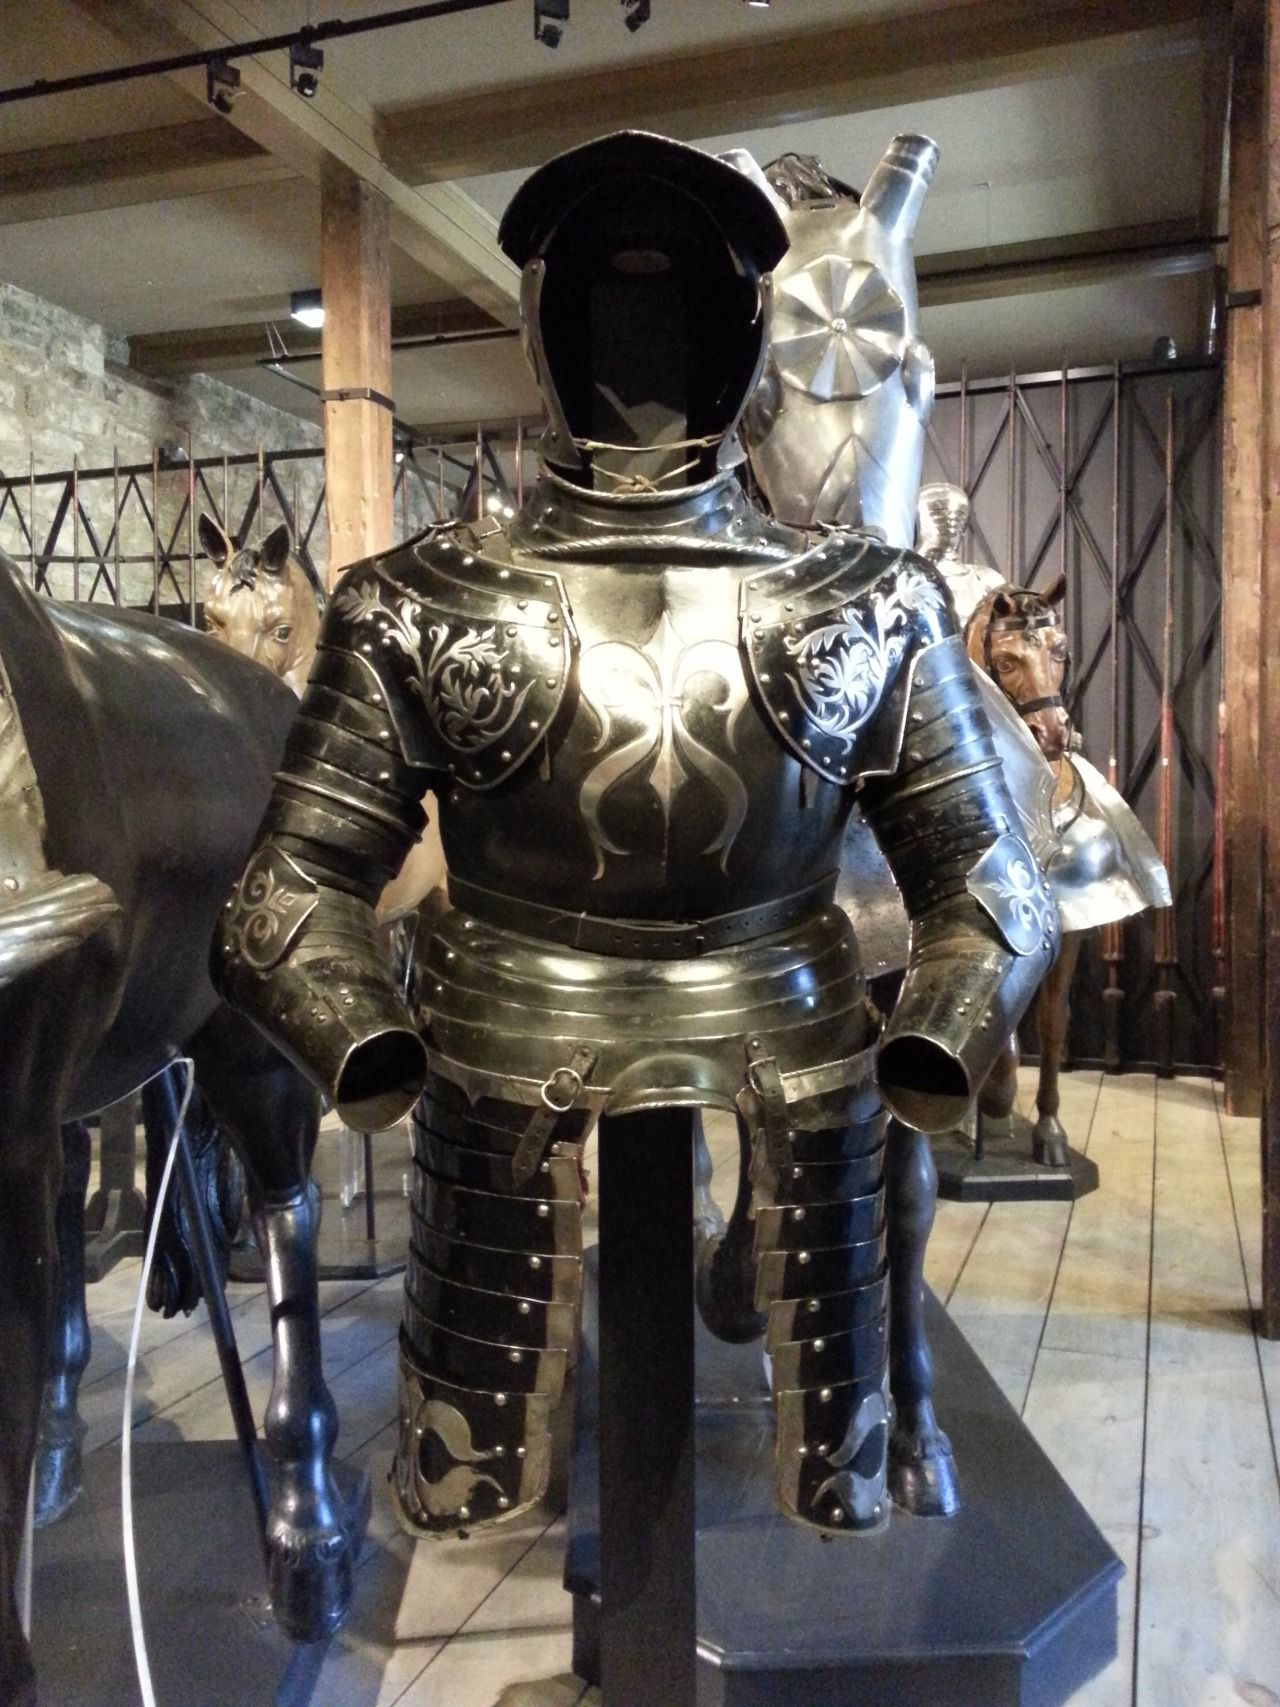 London Sightseeing ロンドン塔 ー ホワイト タワーでロイヤル武器庫 騎士のプレート アーマー Tower Of Medieval Armor Arms And Armour Armour Plate